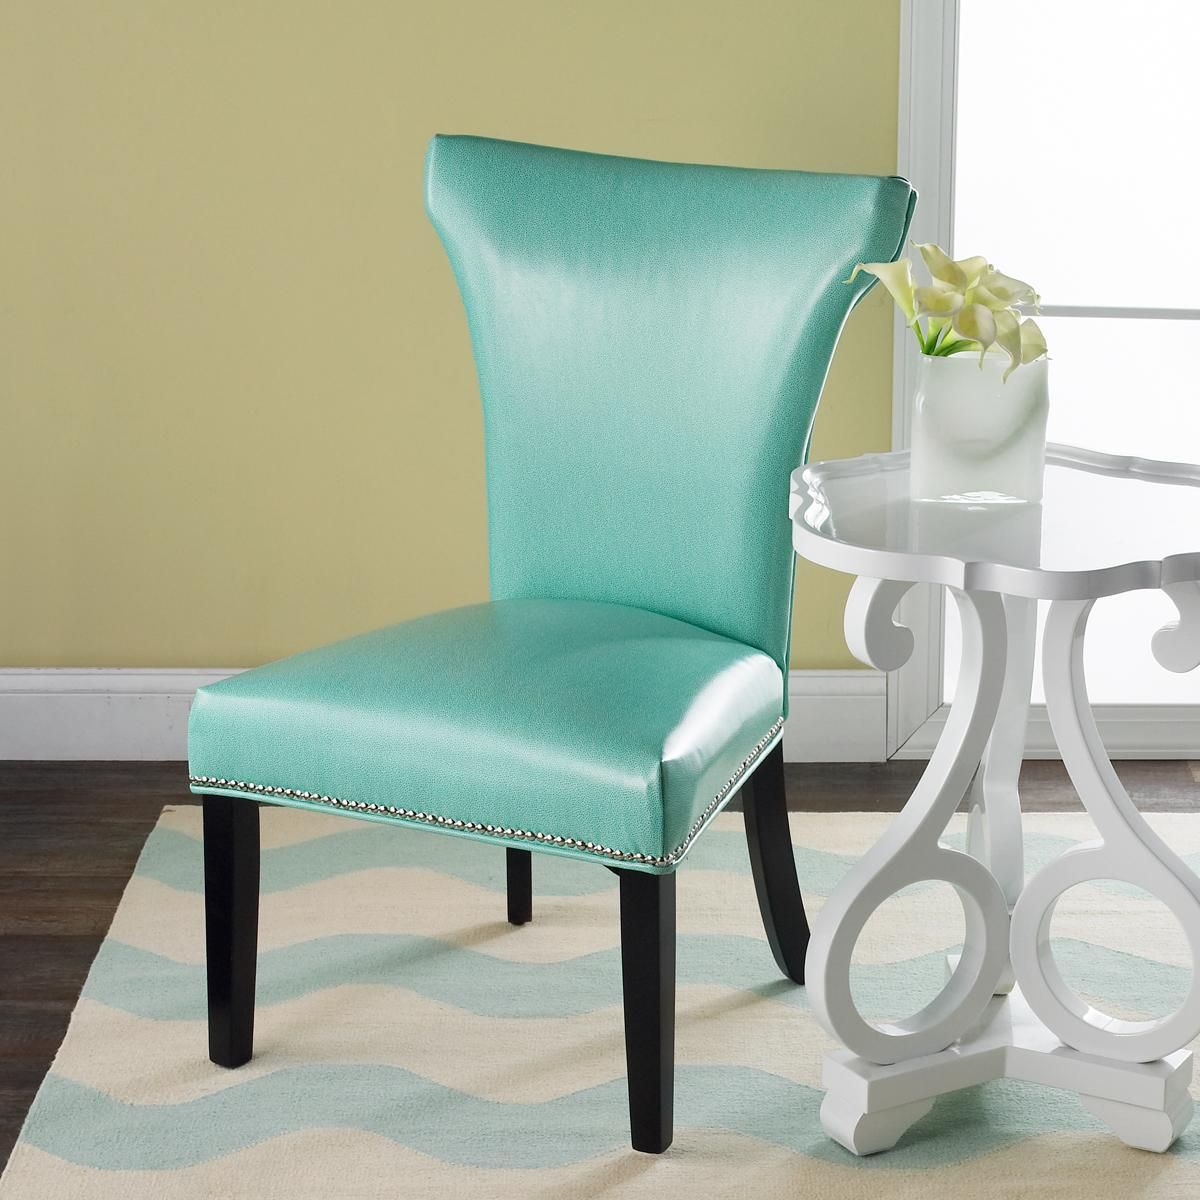 Turquoise Parsons Chair The Shapely Flared Back Design And